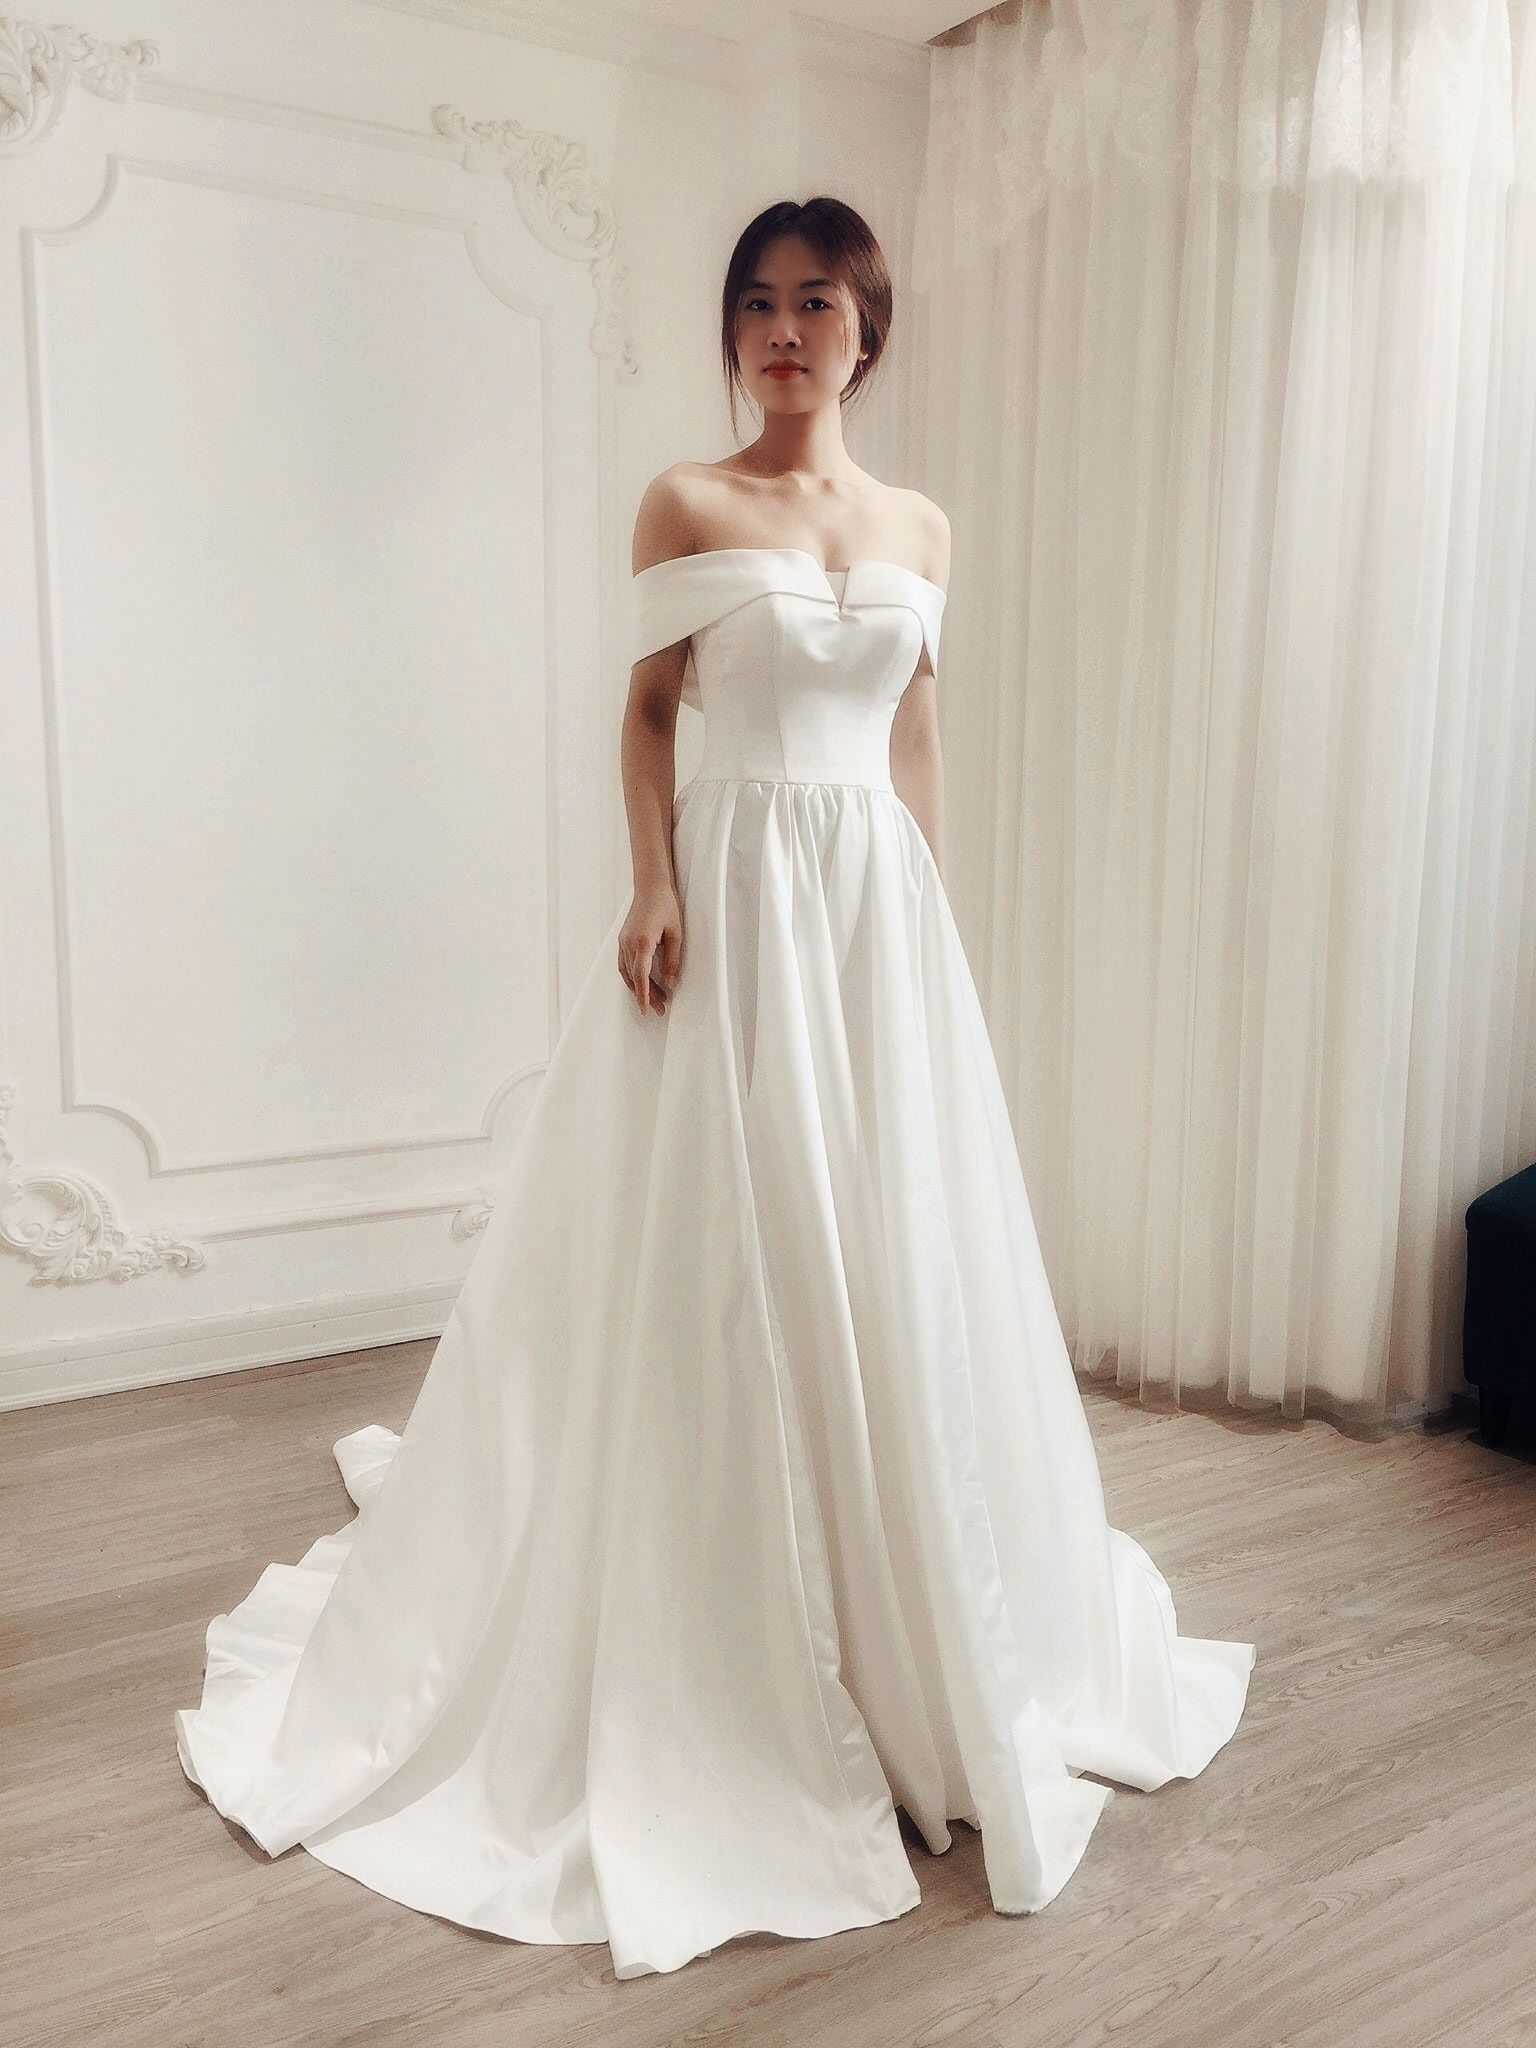 2020 New Wedding Dress Fashion Dress wedding gift stores near me junior high low formal dress